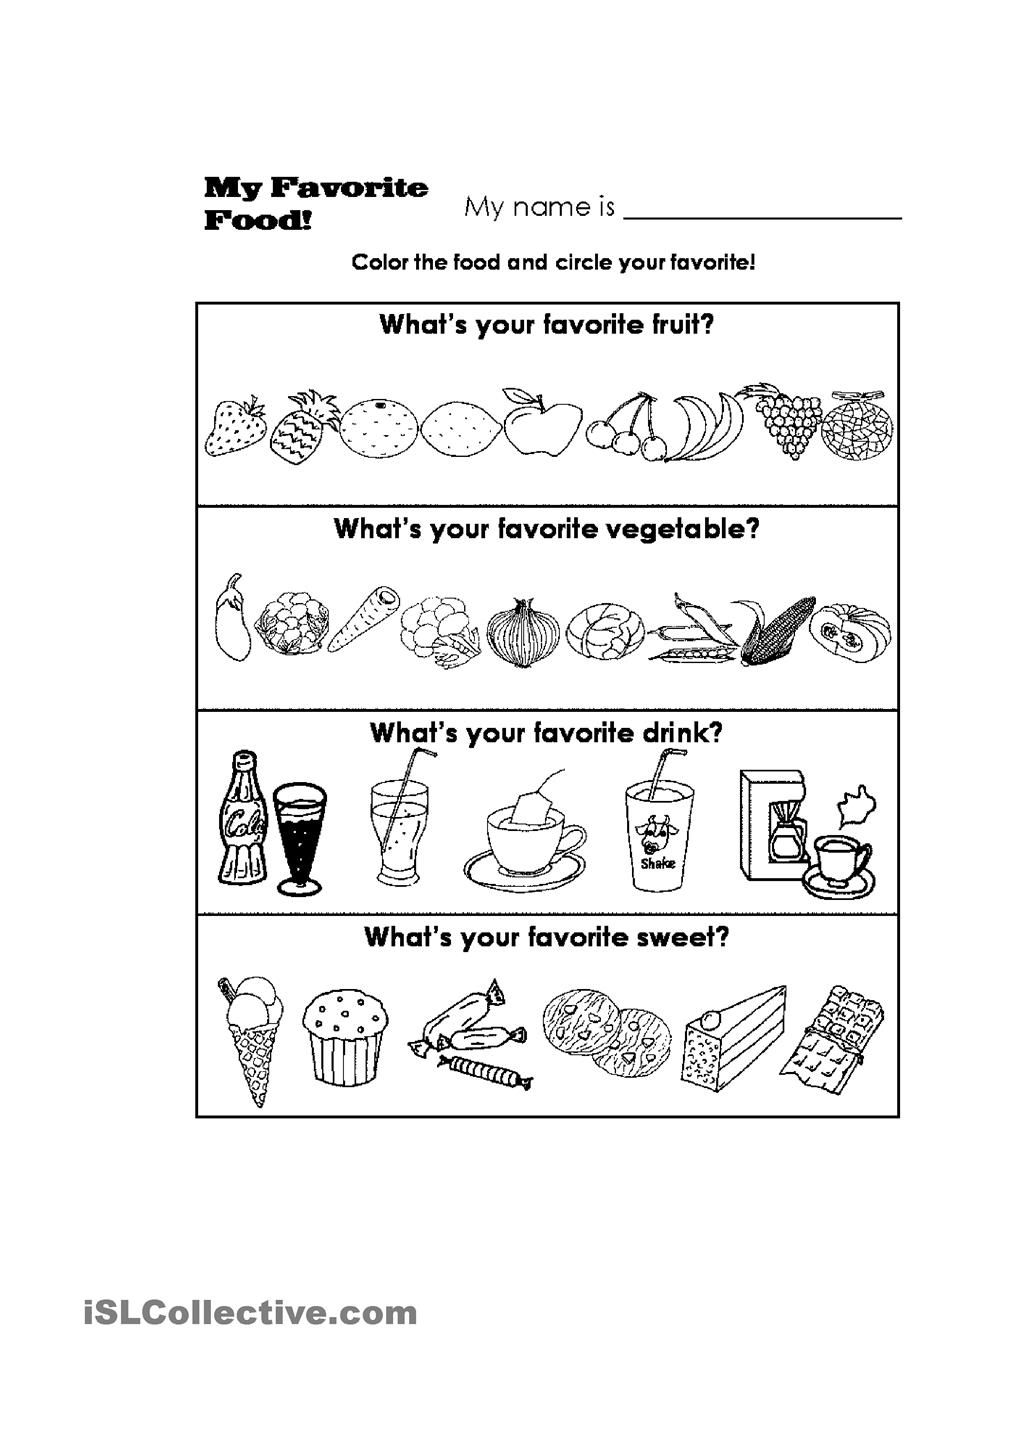 Healthy Food worksheet - Free ESL printable worksheets made by teachers